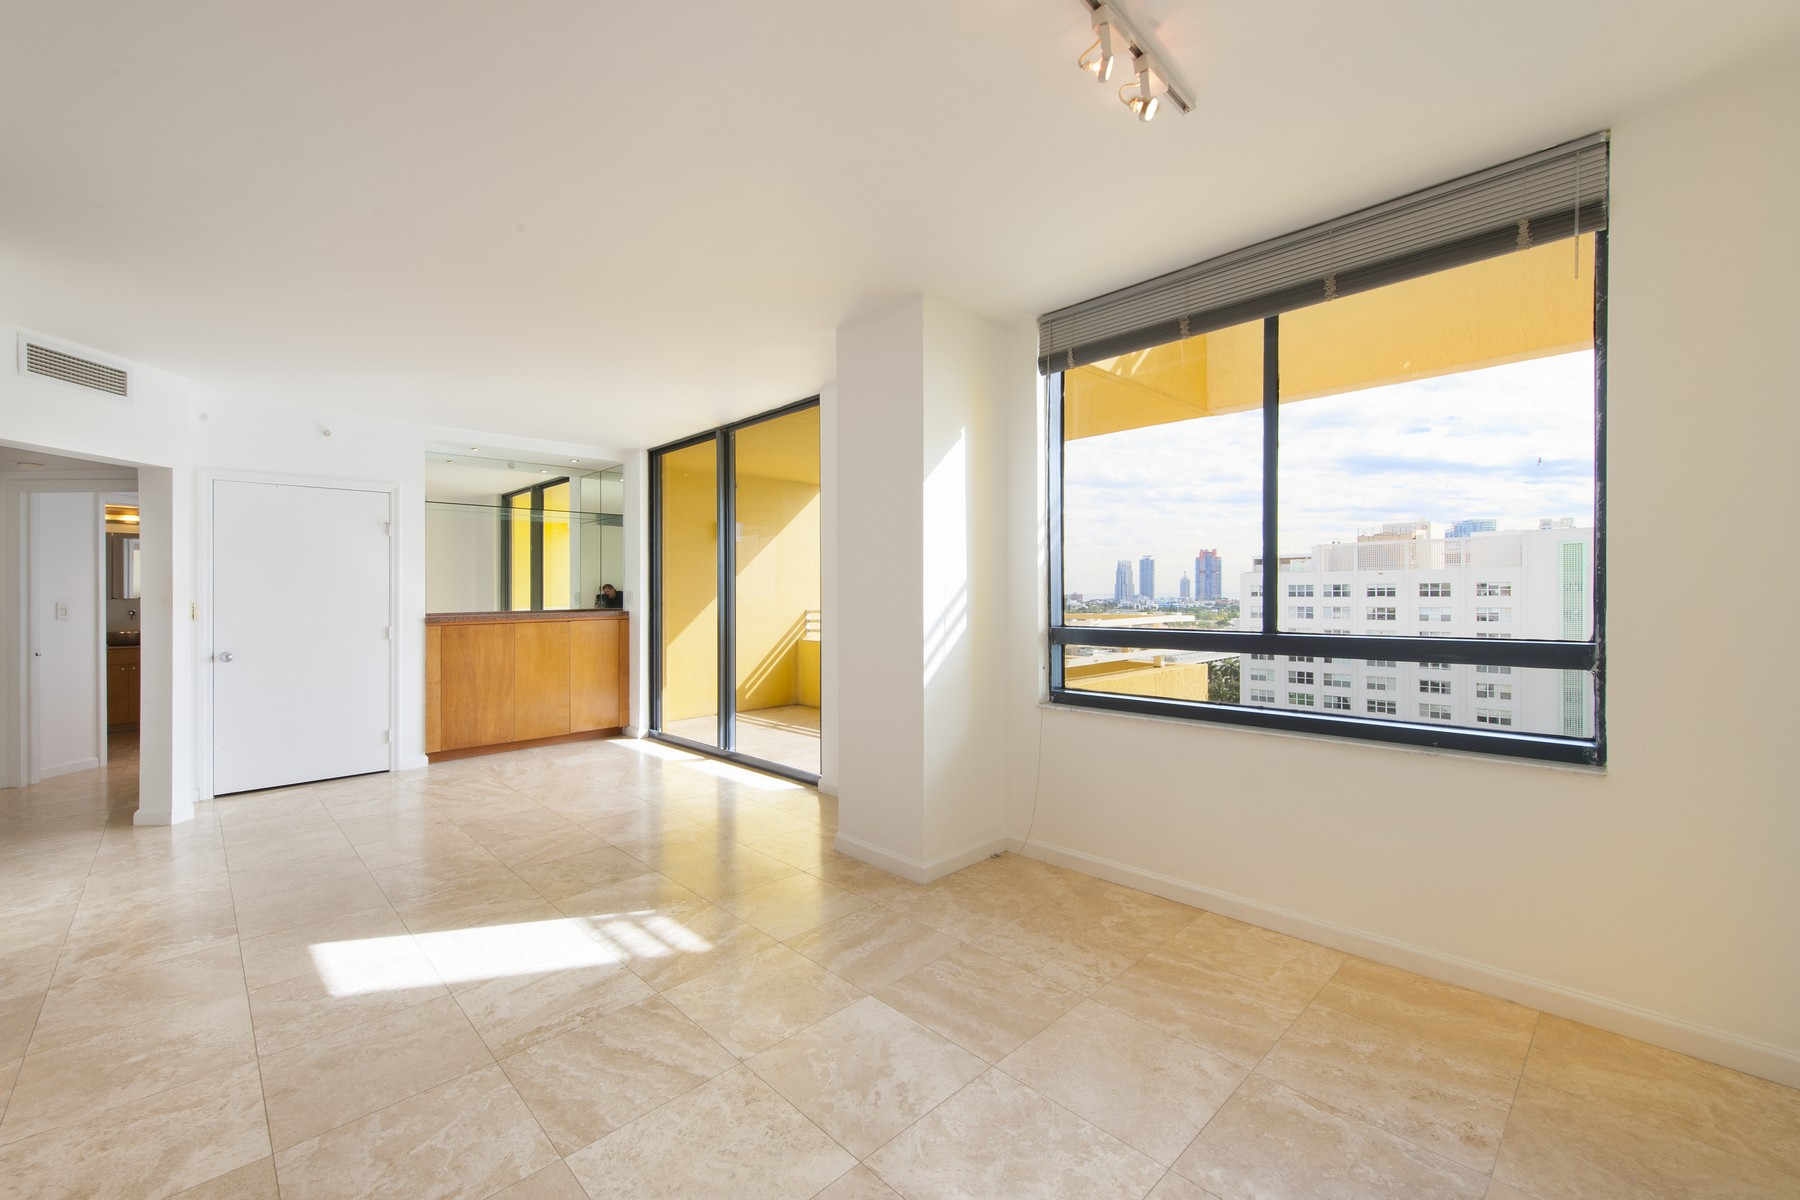 Condominio por un Venta en 1330 West Ave #1510 Miami Beach, Florida 33139 Estados Unidos